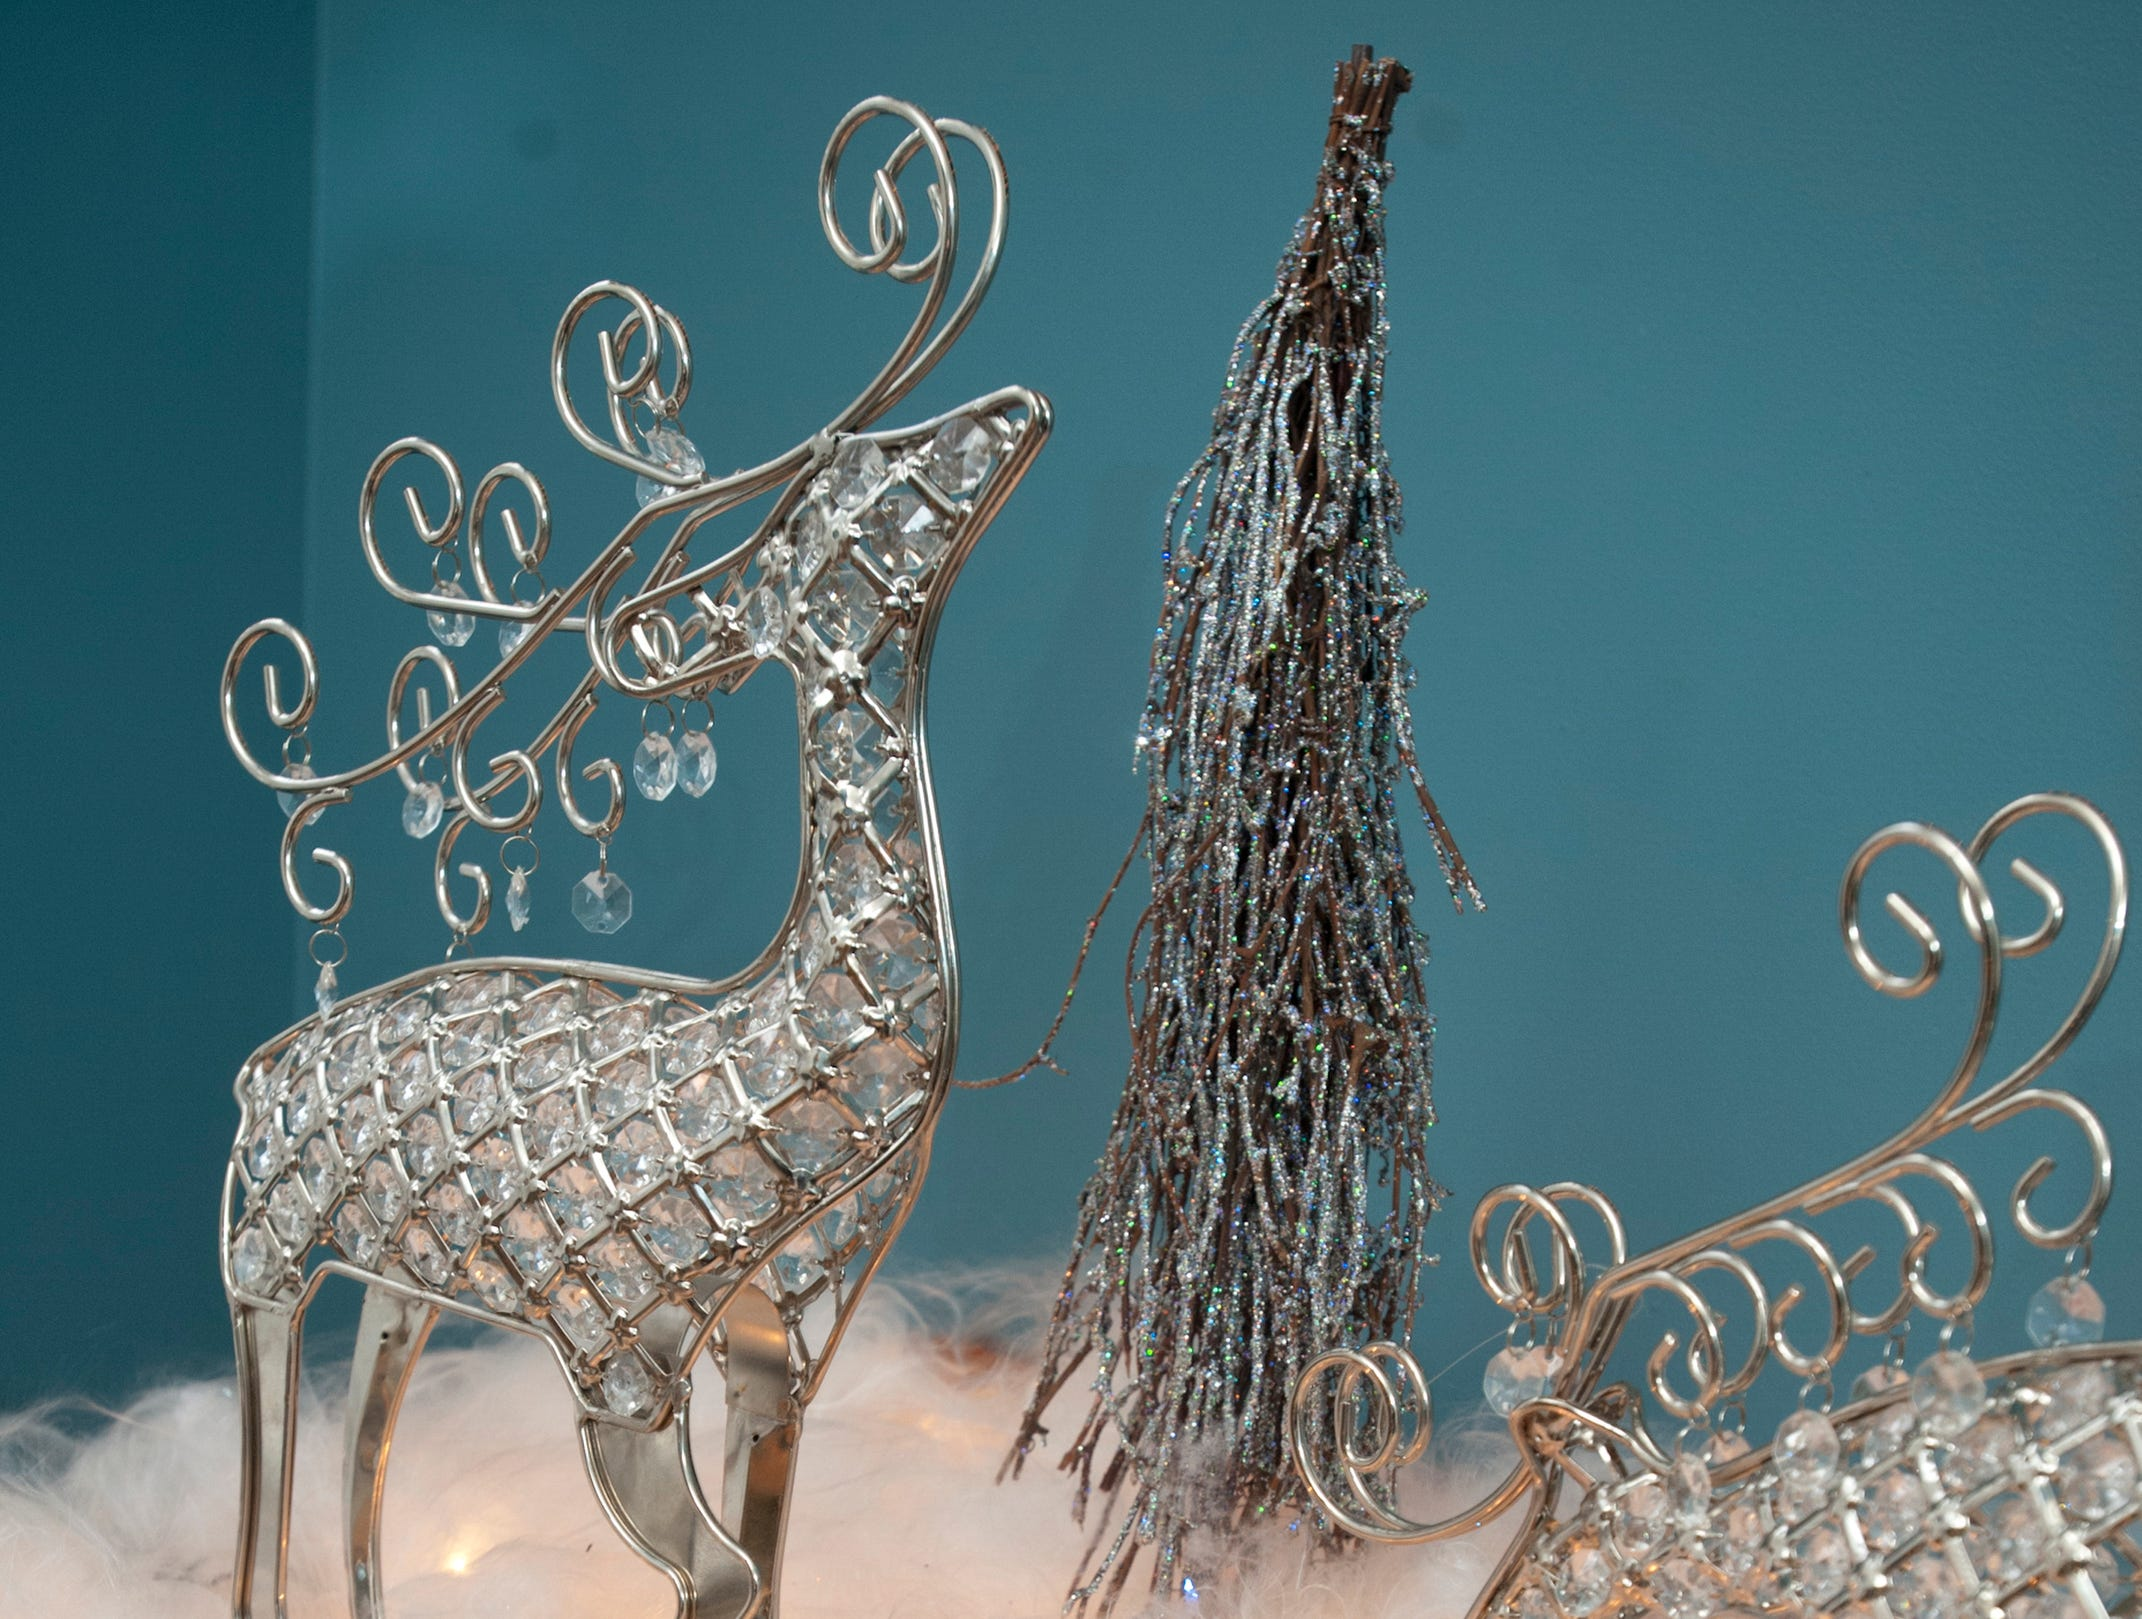 Metal reindeer decorate a side table in the McMurry guest room.